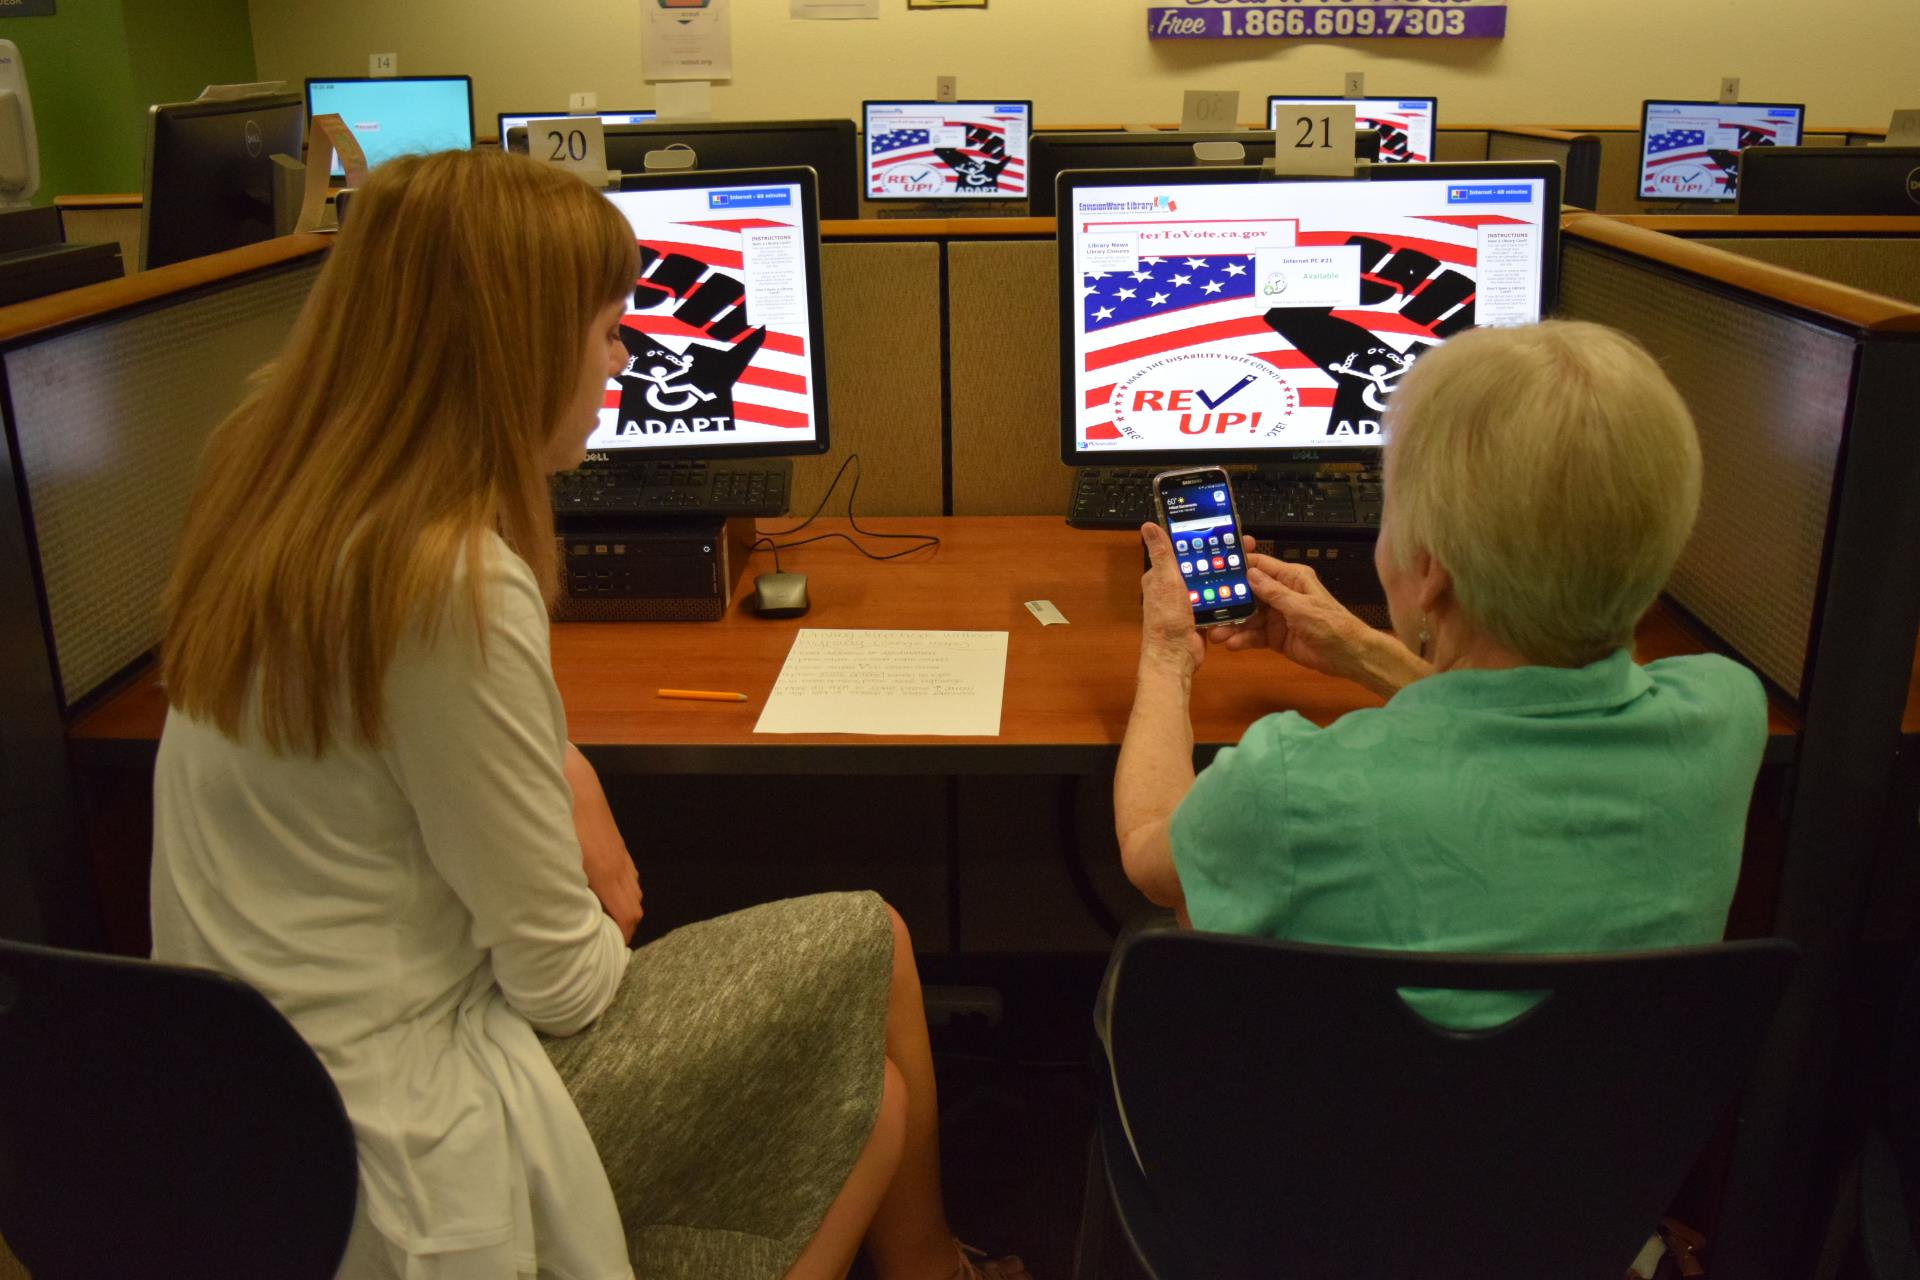 generation tech camp volunteer helps train senior on use of cellphone